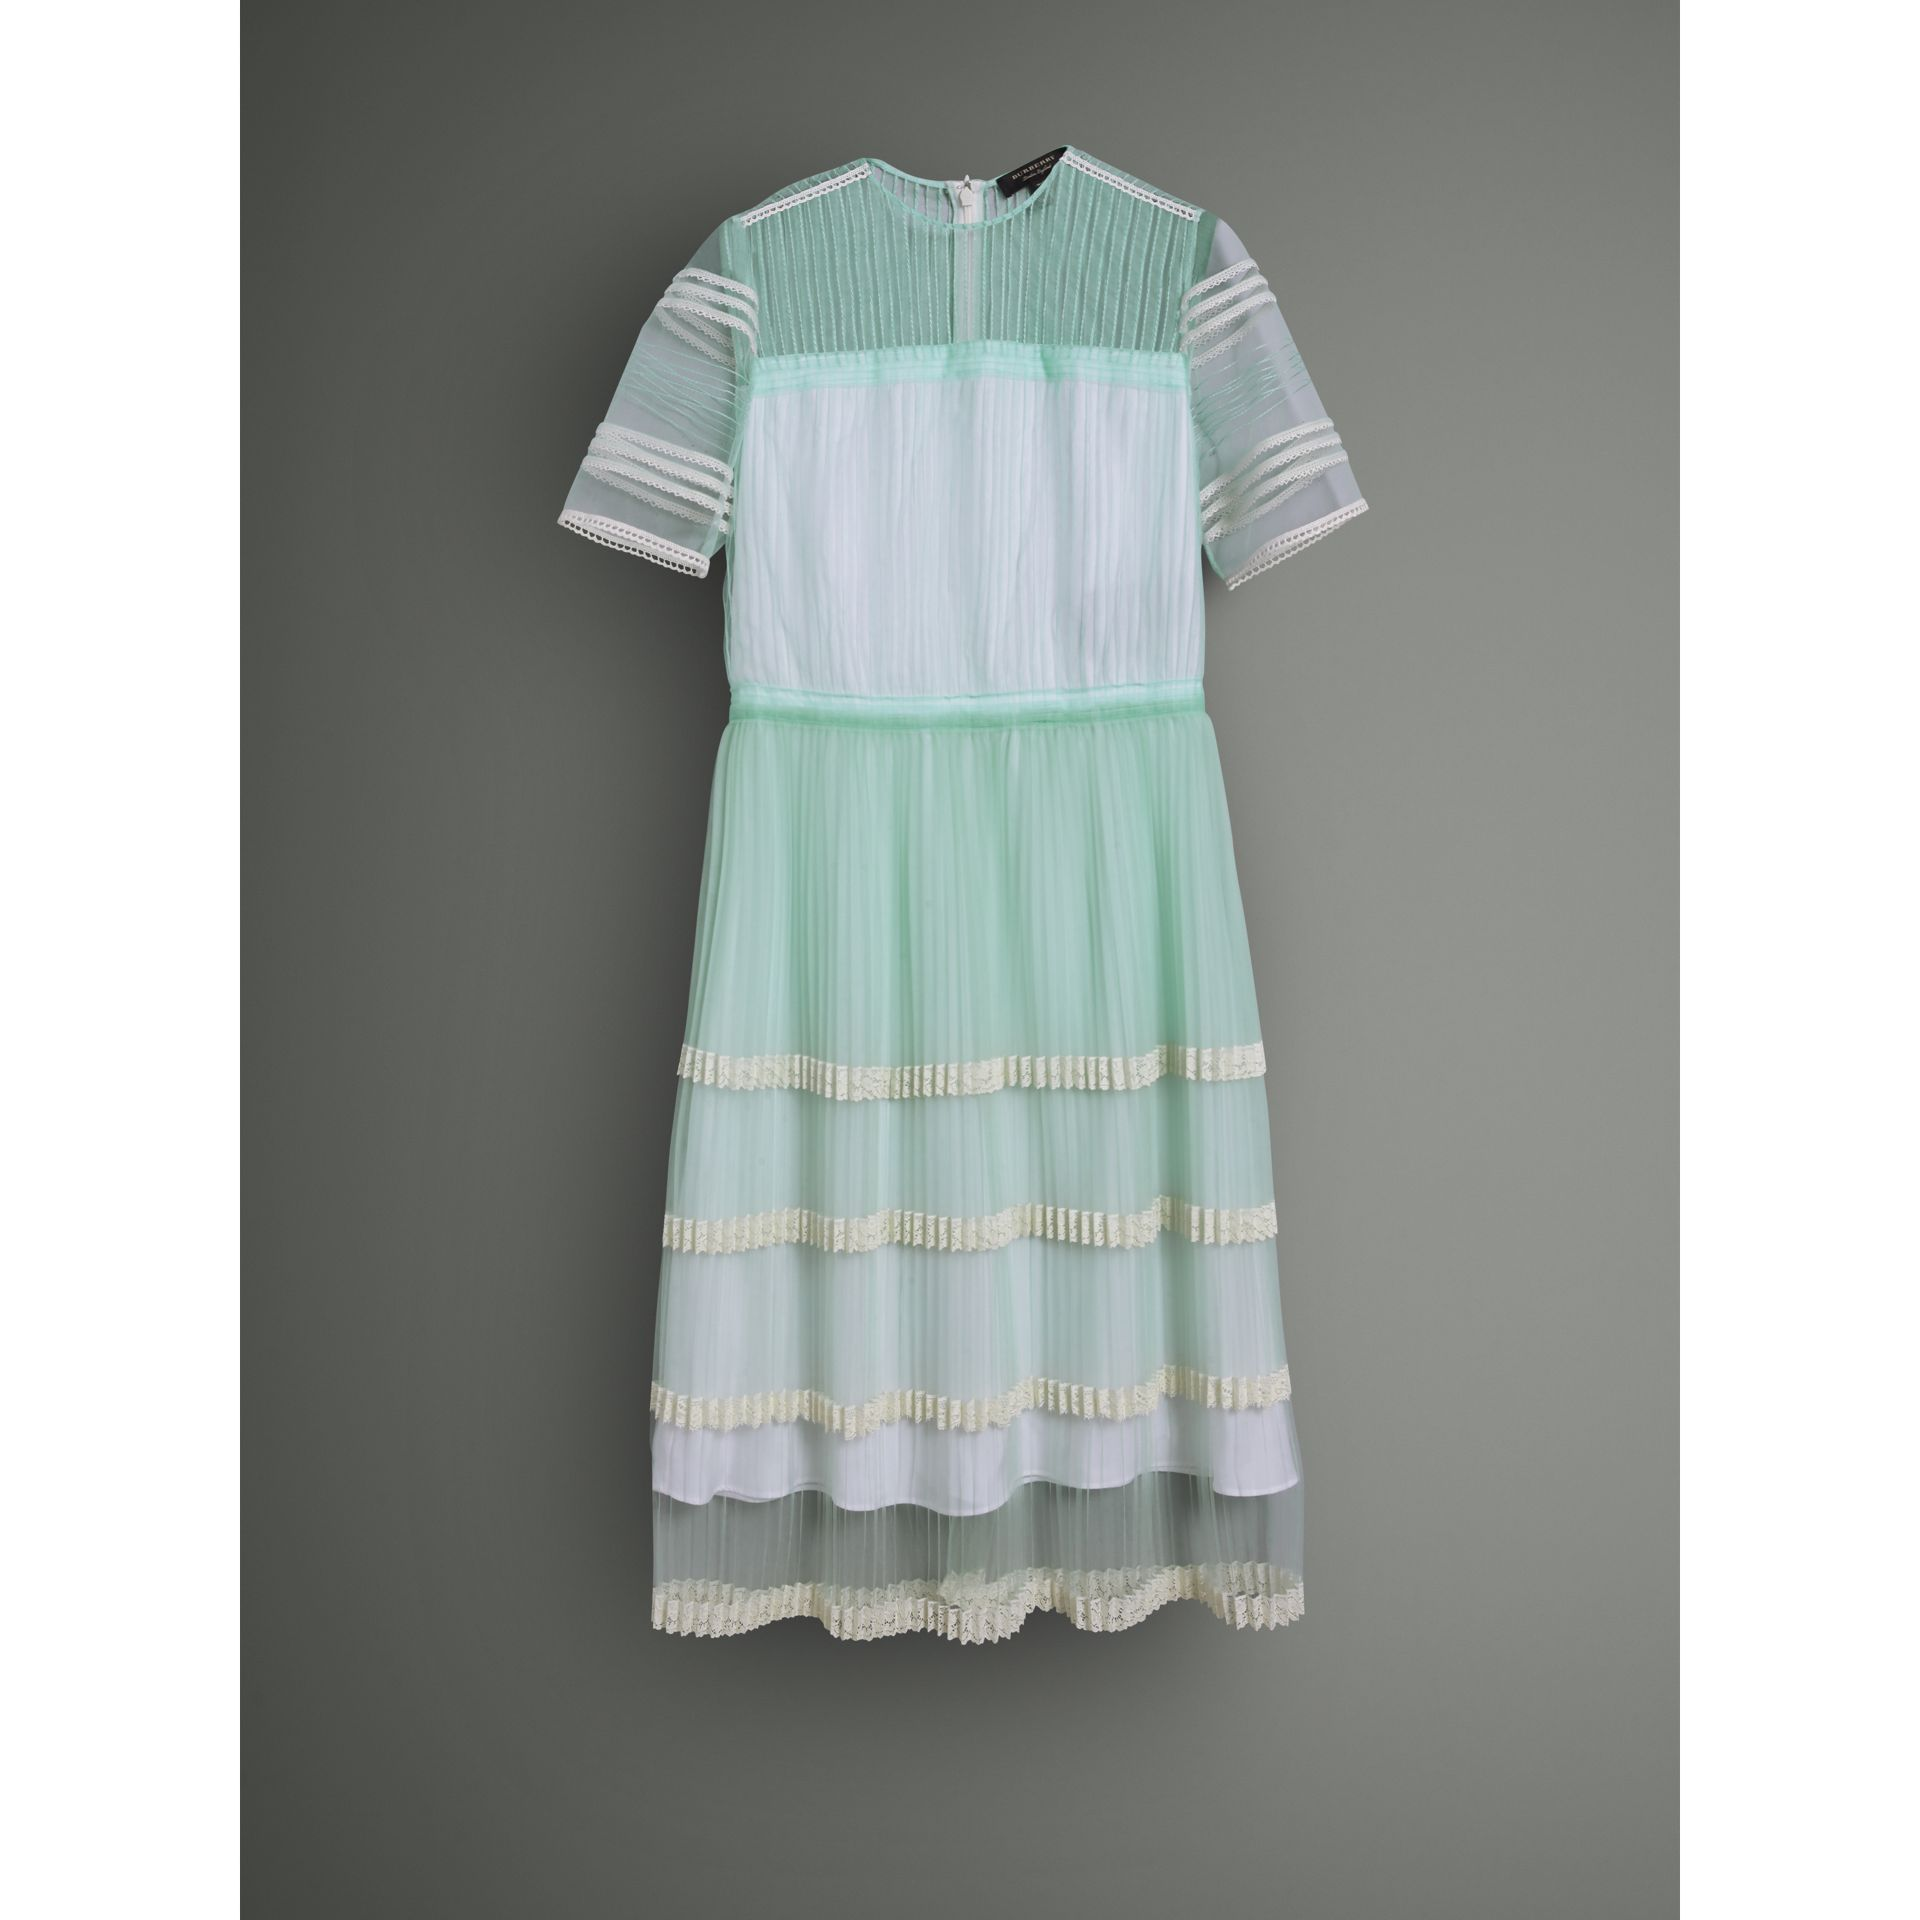 English Lace Trim Pleated Tulle Dress in Light Mint - Women | Burberry United States - gallery image 4